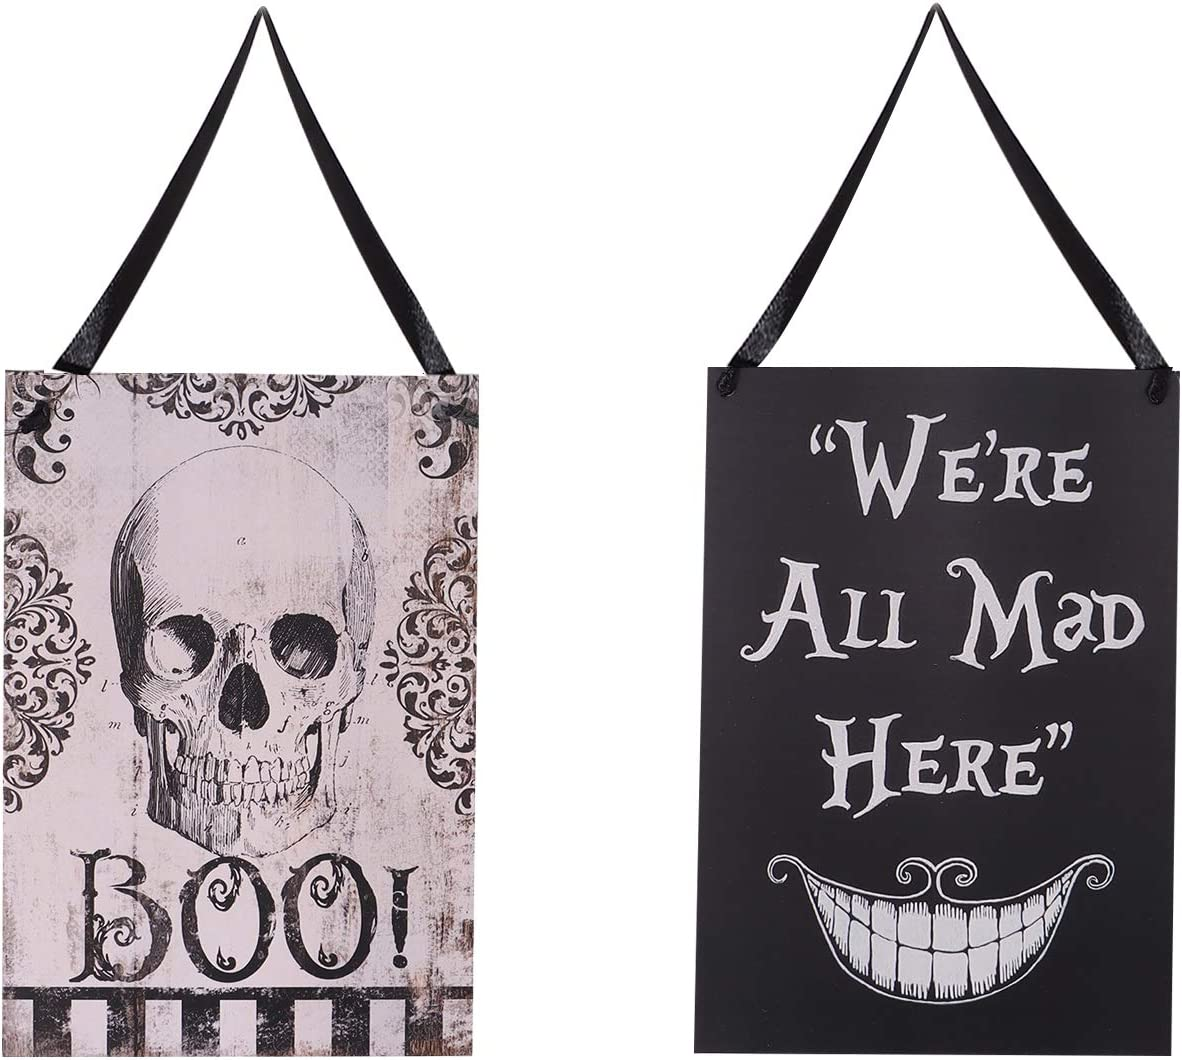 2 Pieces Halloween Themes Welcome Boards Haning Welcome Sign Wooden Hanging Welcome Boards for Home Office Halloween Party Decorations